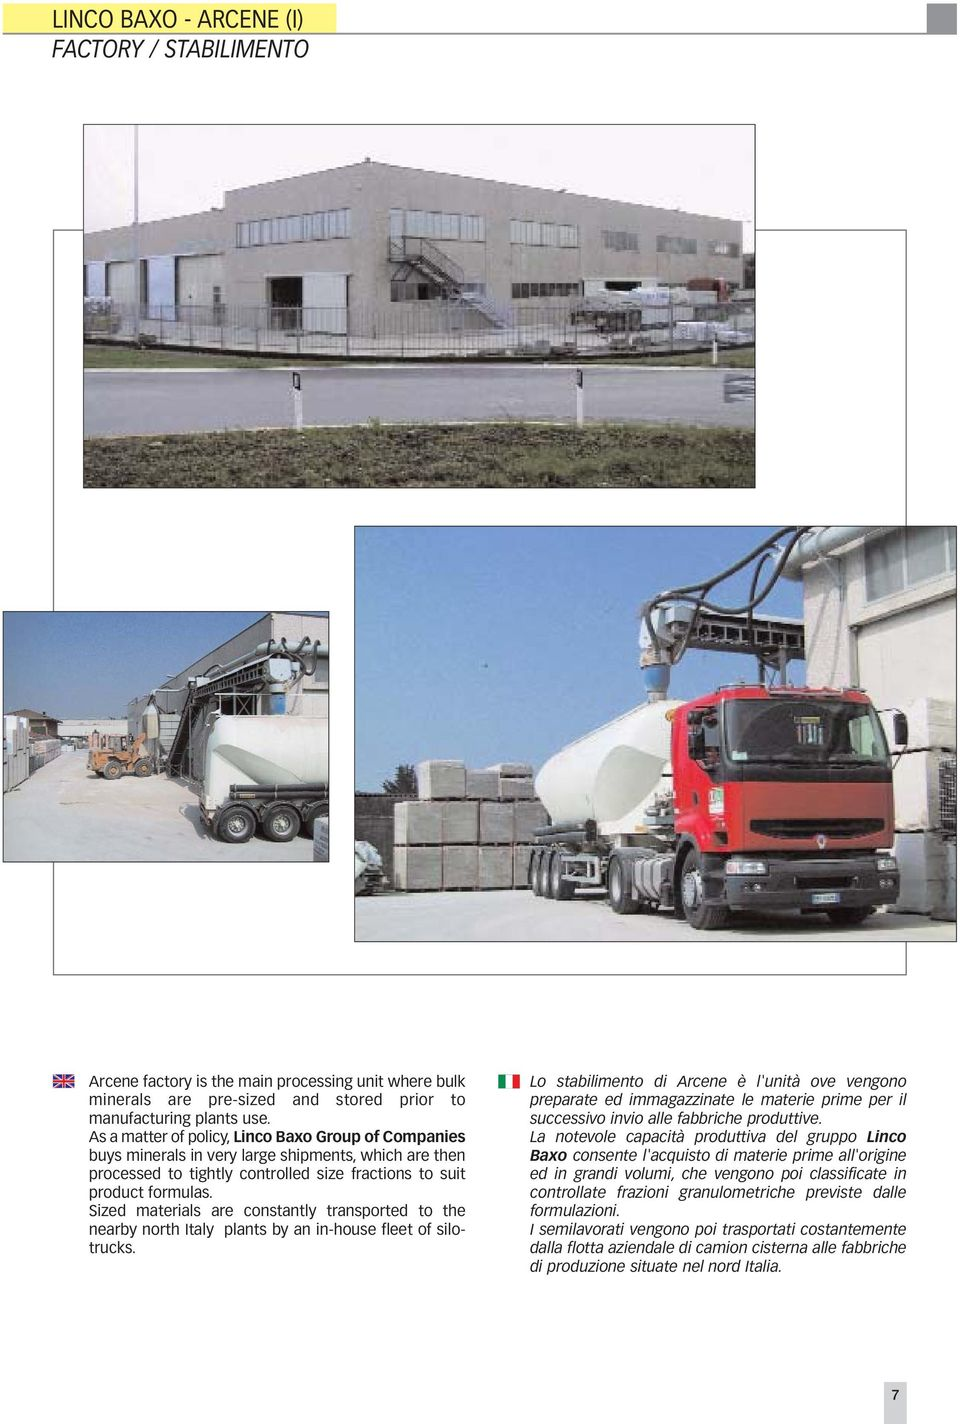 Sized materials are constantly transported to the nearby north Italy plants by an in-house fleet of silotrucks.